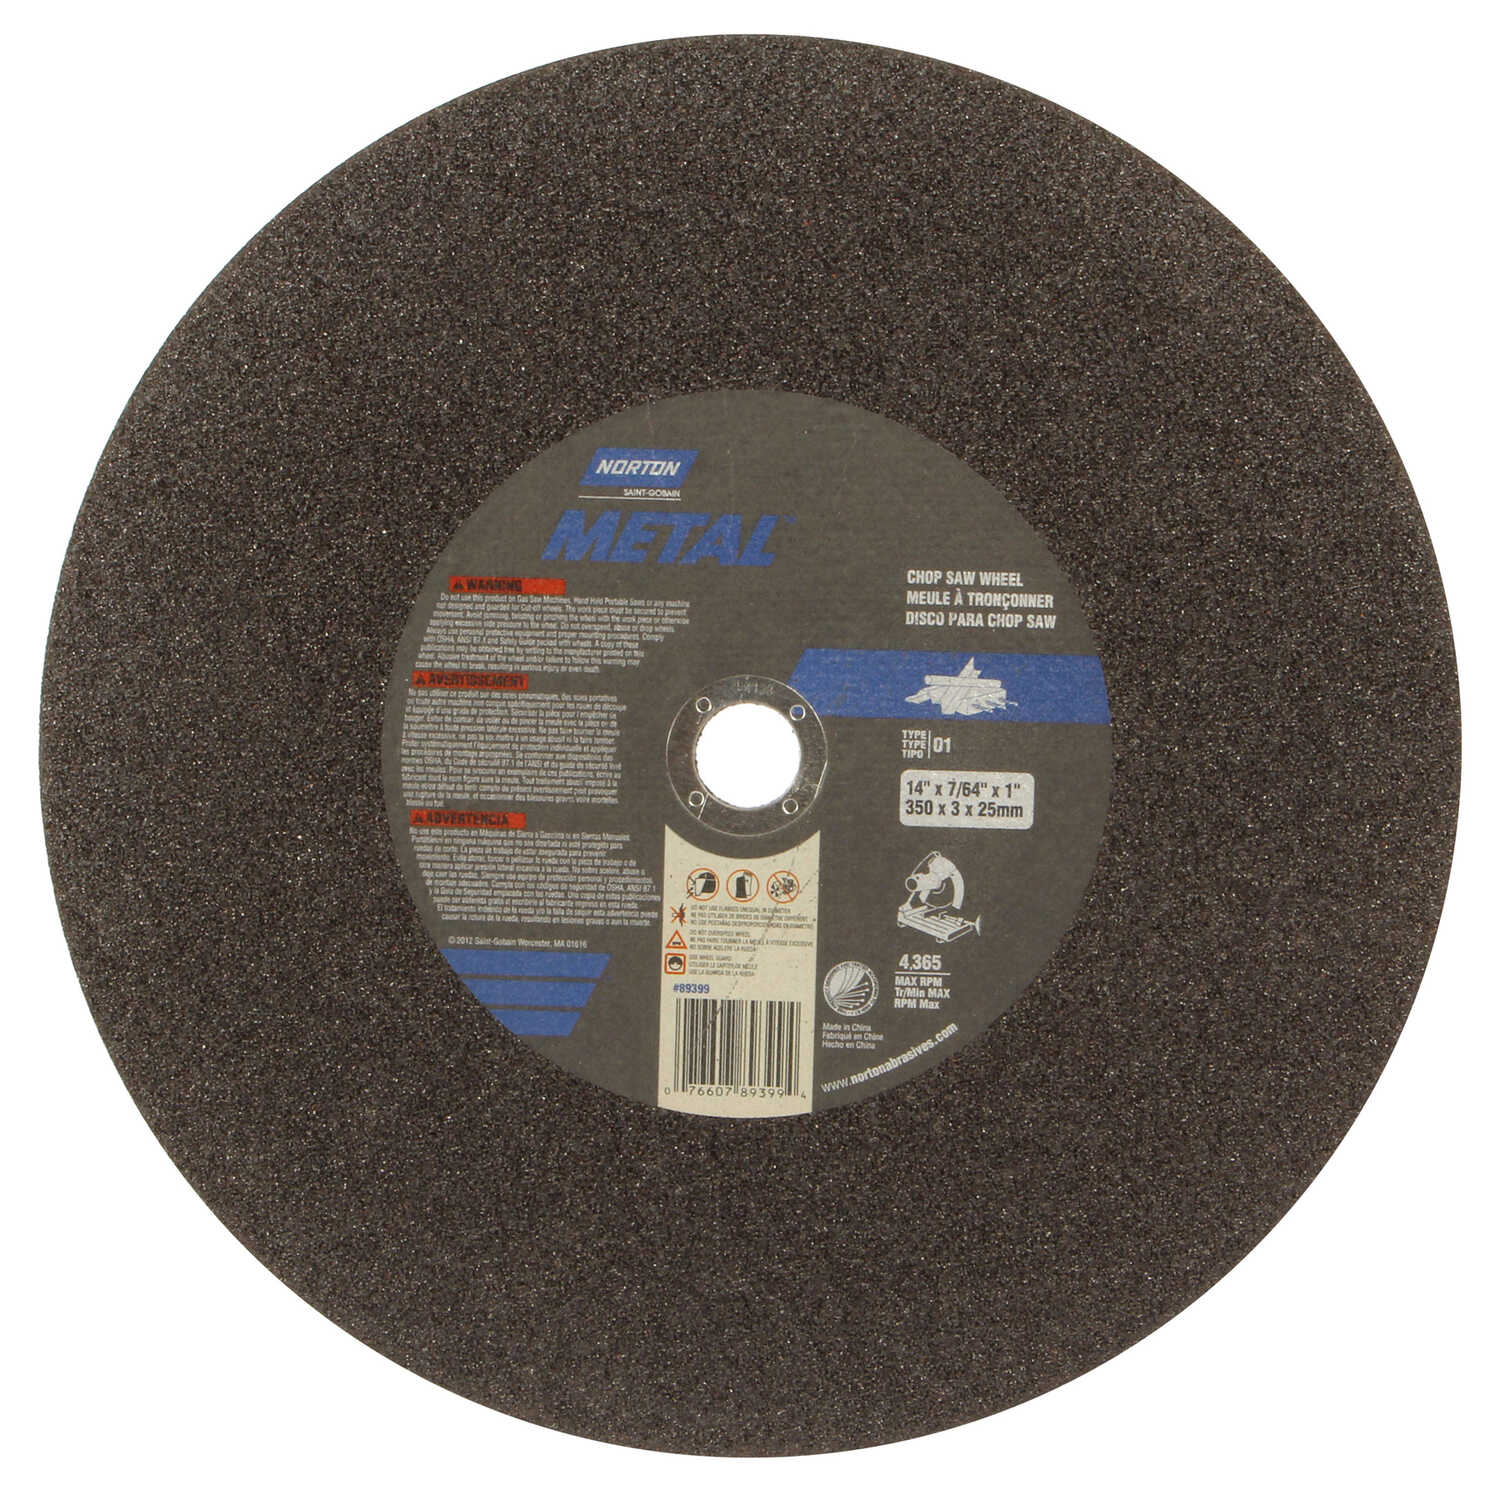 Norton  Aluminum Oxide  Chop Saw Wheel  7/64 in. thick  1 pc. 14 in.